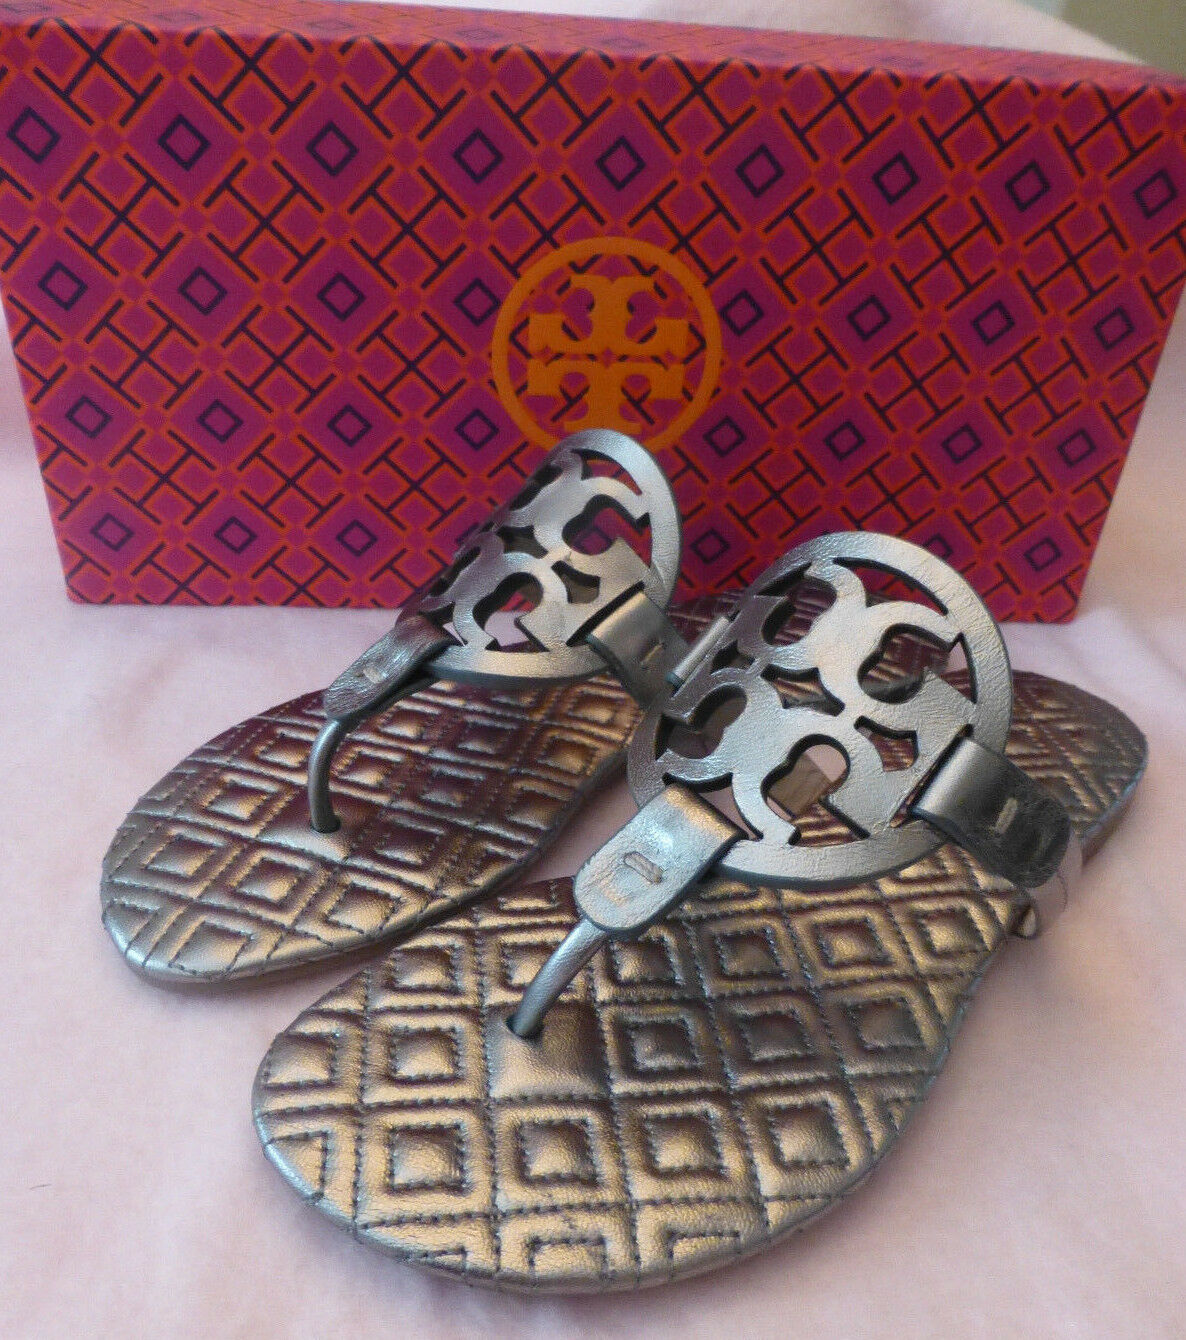 ca3bd0df4db9 Tory Burch Quilted Quilted Quilted Marion Metallic Miller Leather Sandal  Gunmetal Taille 5 New f2e68a